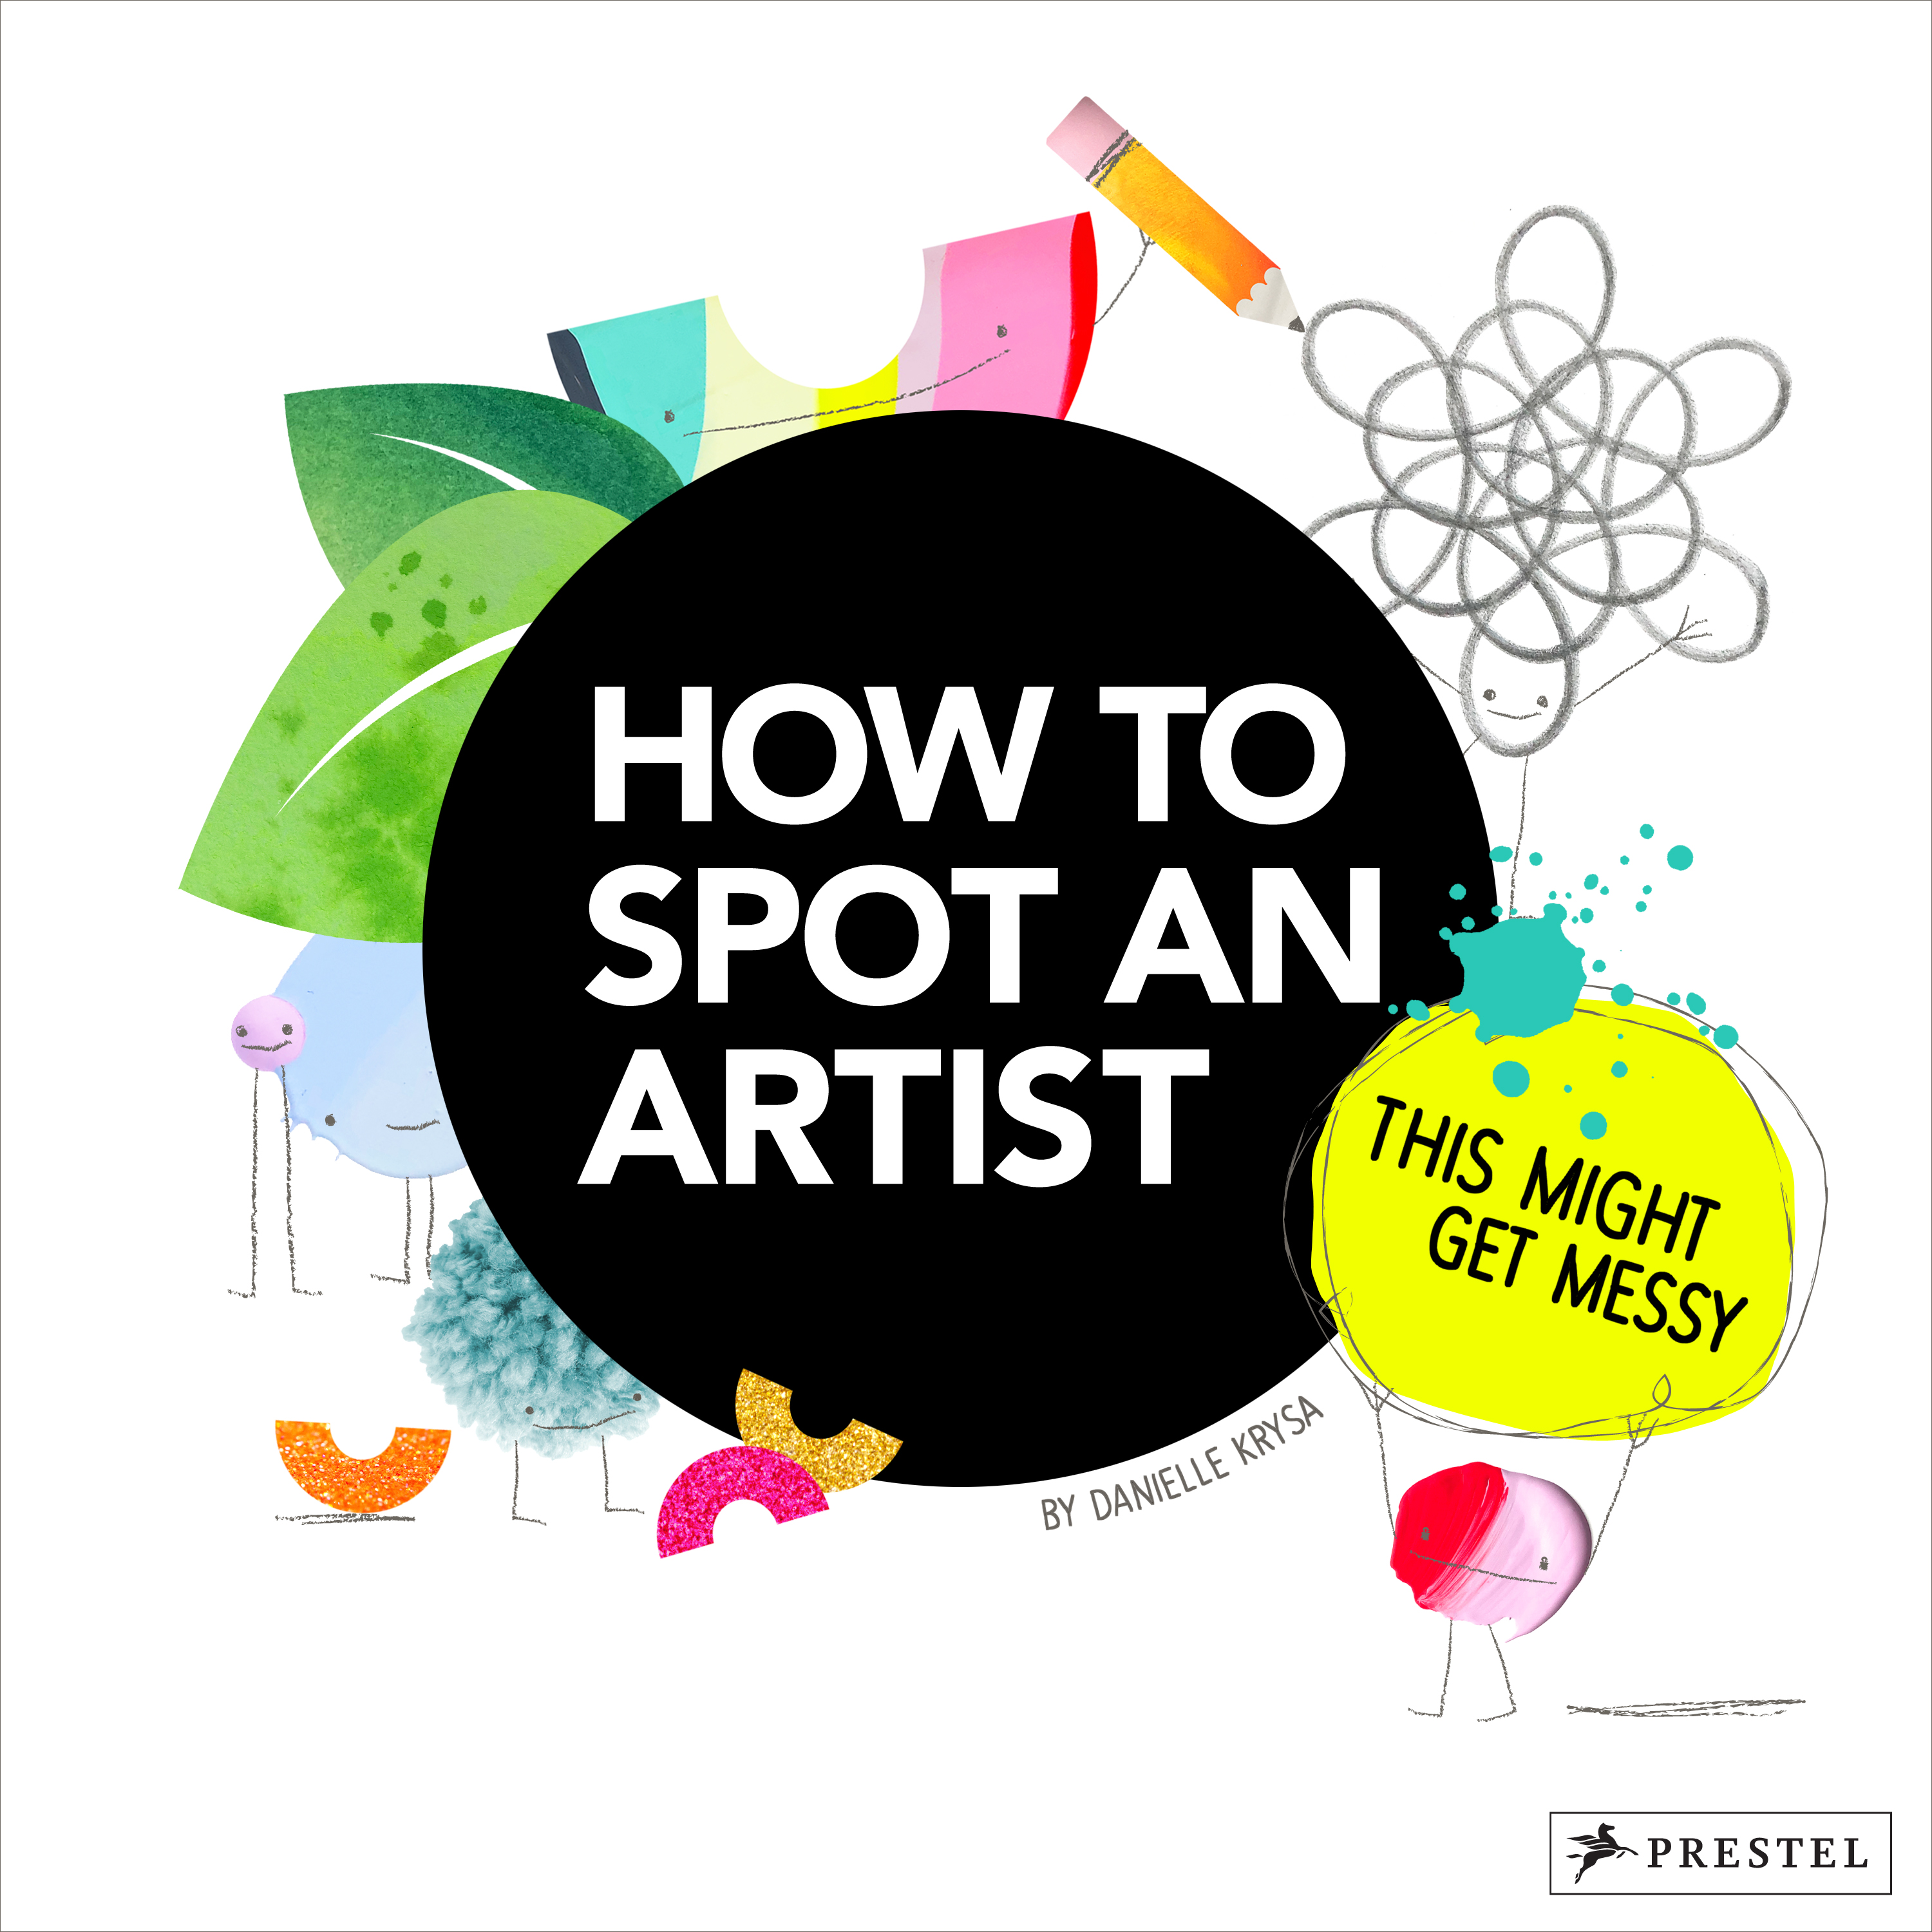 How_to_Spot_an_Artist_210041_300dpi.jpg